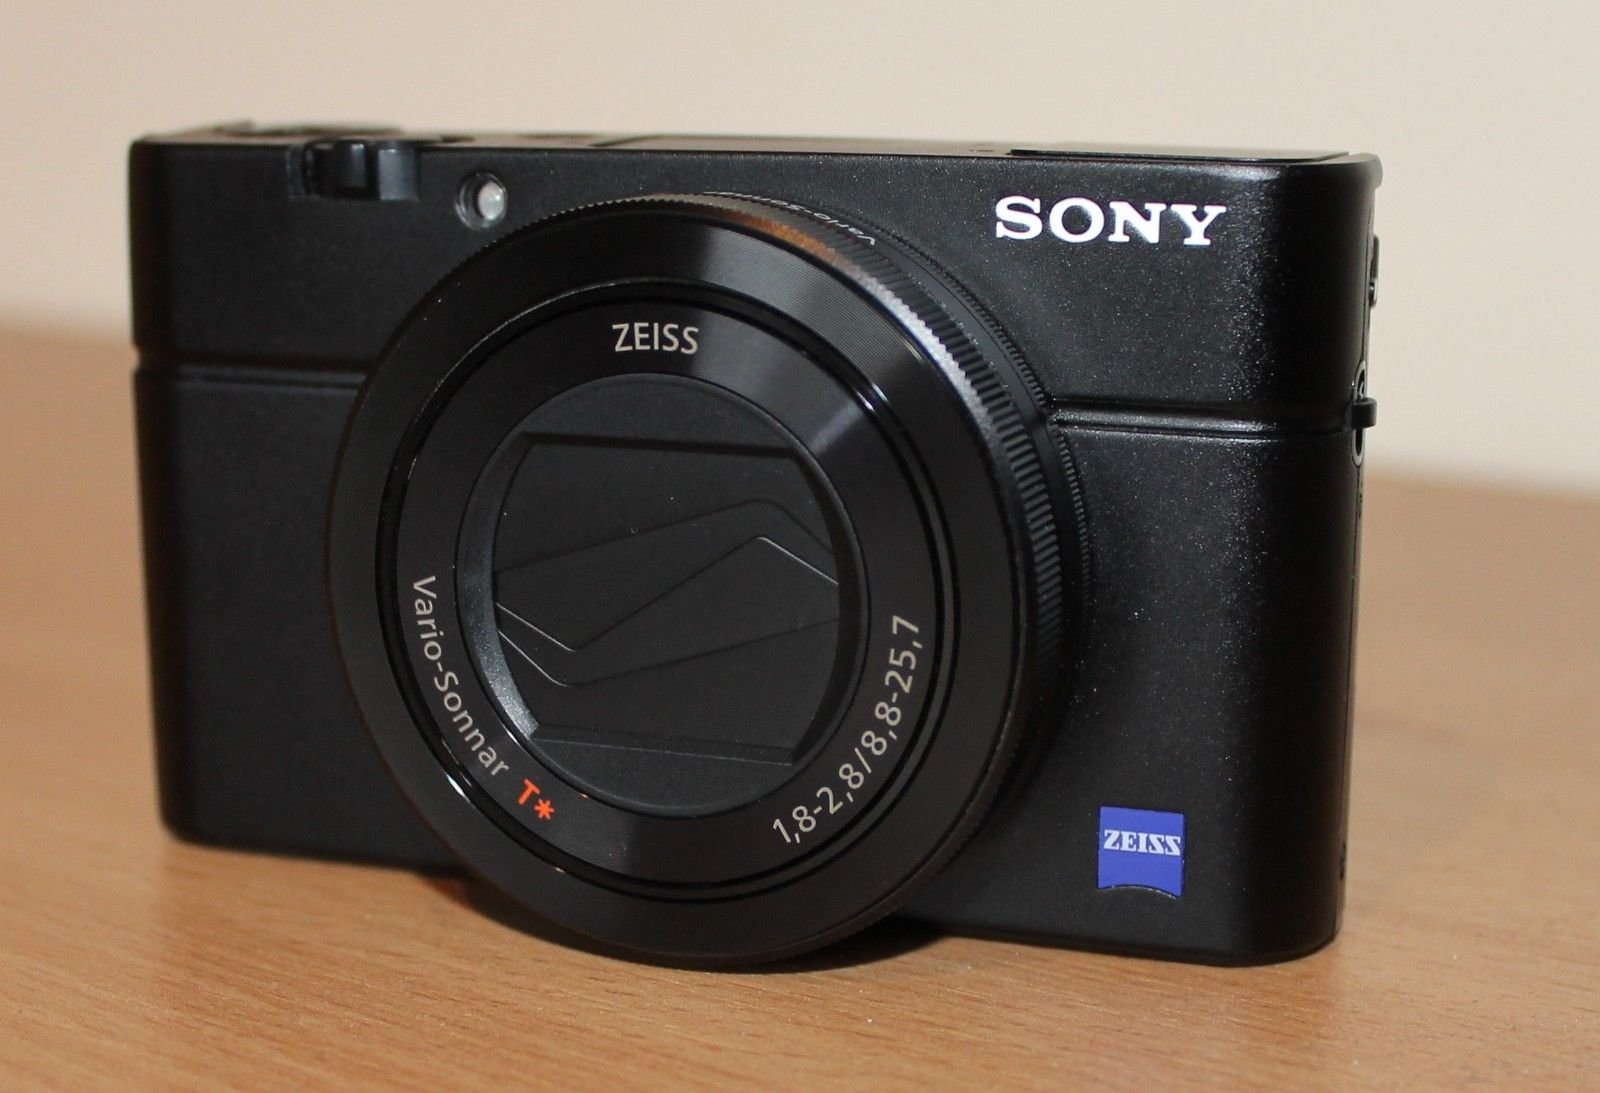 Sony Cyber-shot DSC-RX100III 20.1 MP Digitalkamera - Schwarz